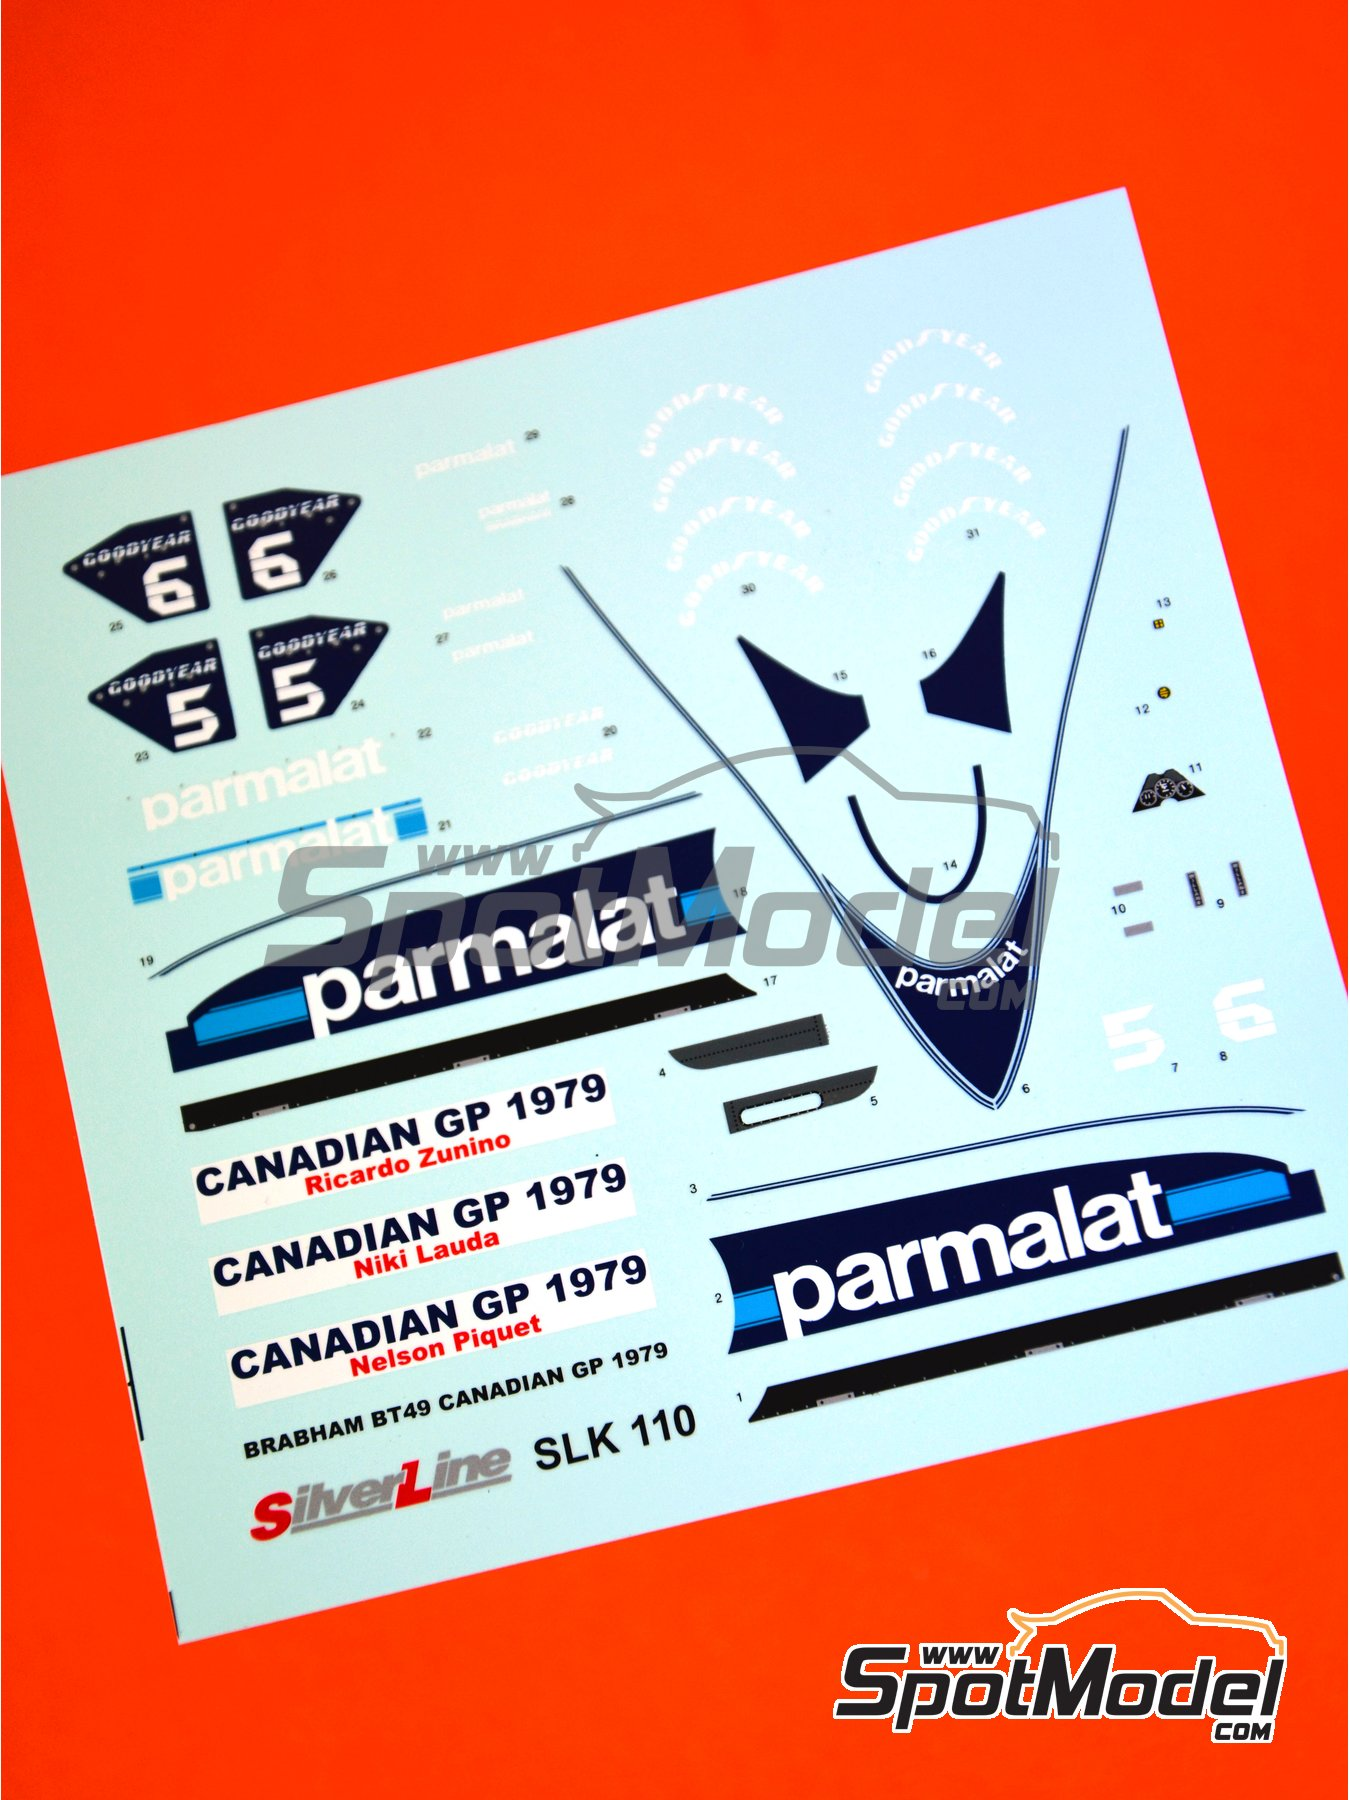 Brabham Ford BT49 Parmalat - Canadian Grand Prix 1979 | Marking / livery in 1/43 scale manufactured by Tameo Kits (ref. DK-SLK110) image